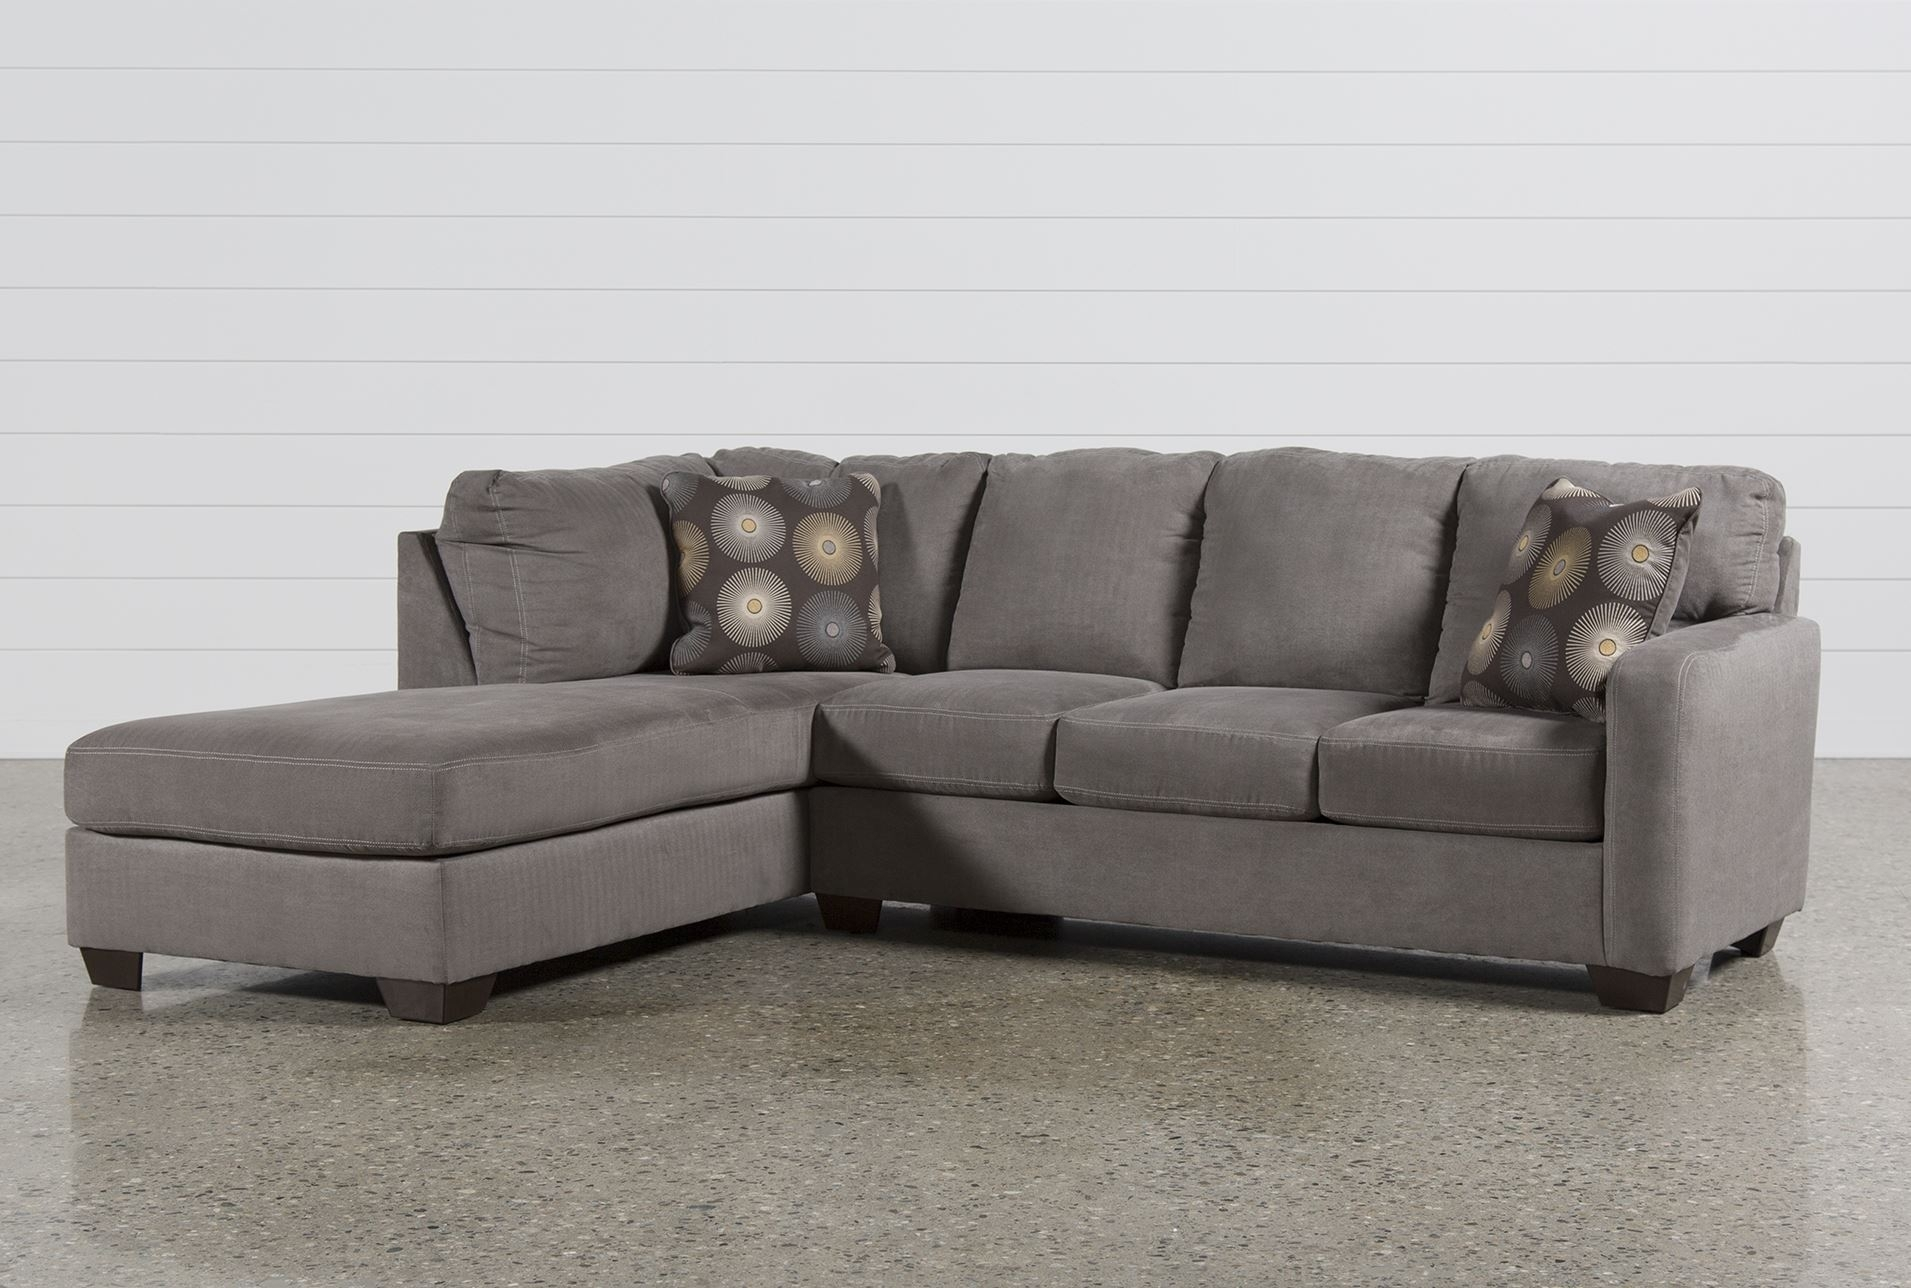 Laf Chaise Sectional Sofa | Baci Living Room intended for Arrowmask 2 Piece Sectionals With Raf Chaise (Image 14 of 30)